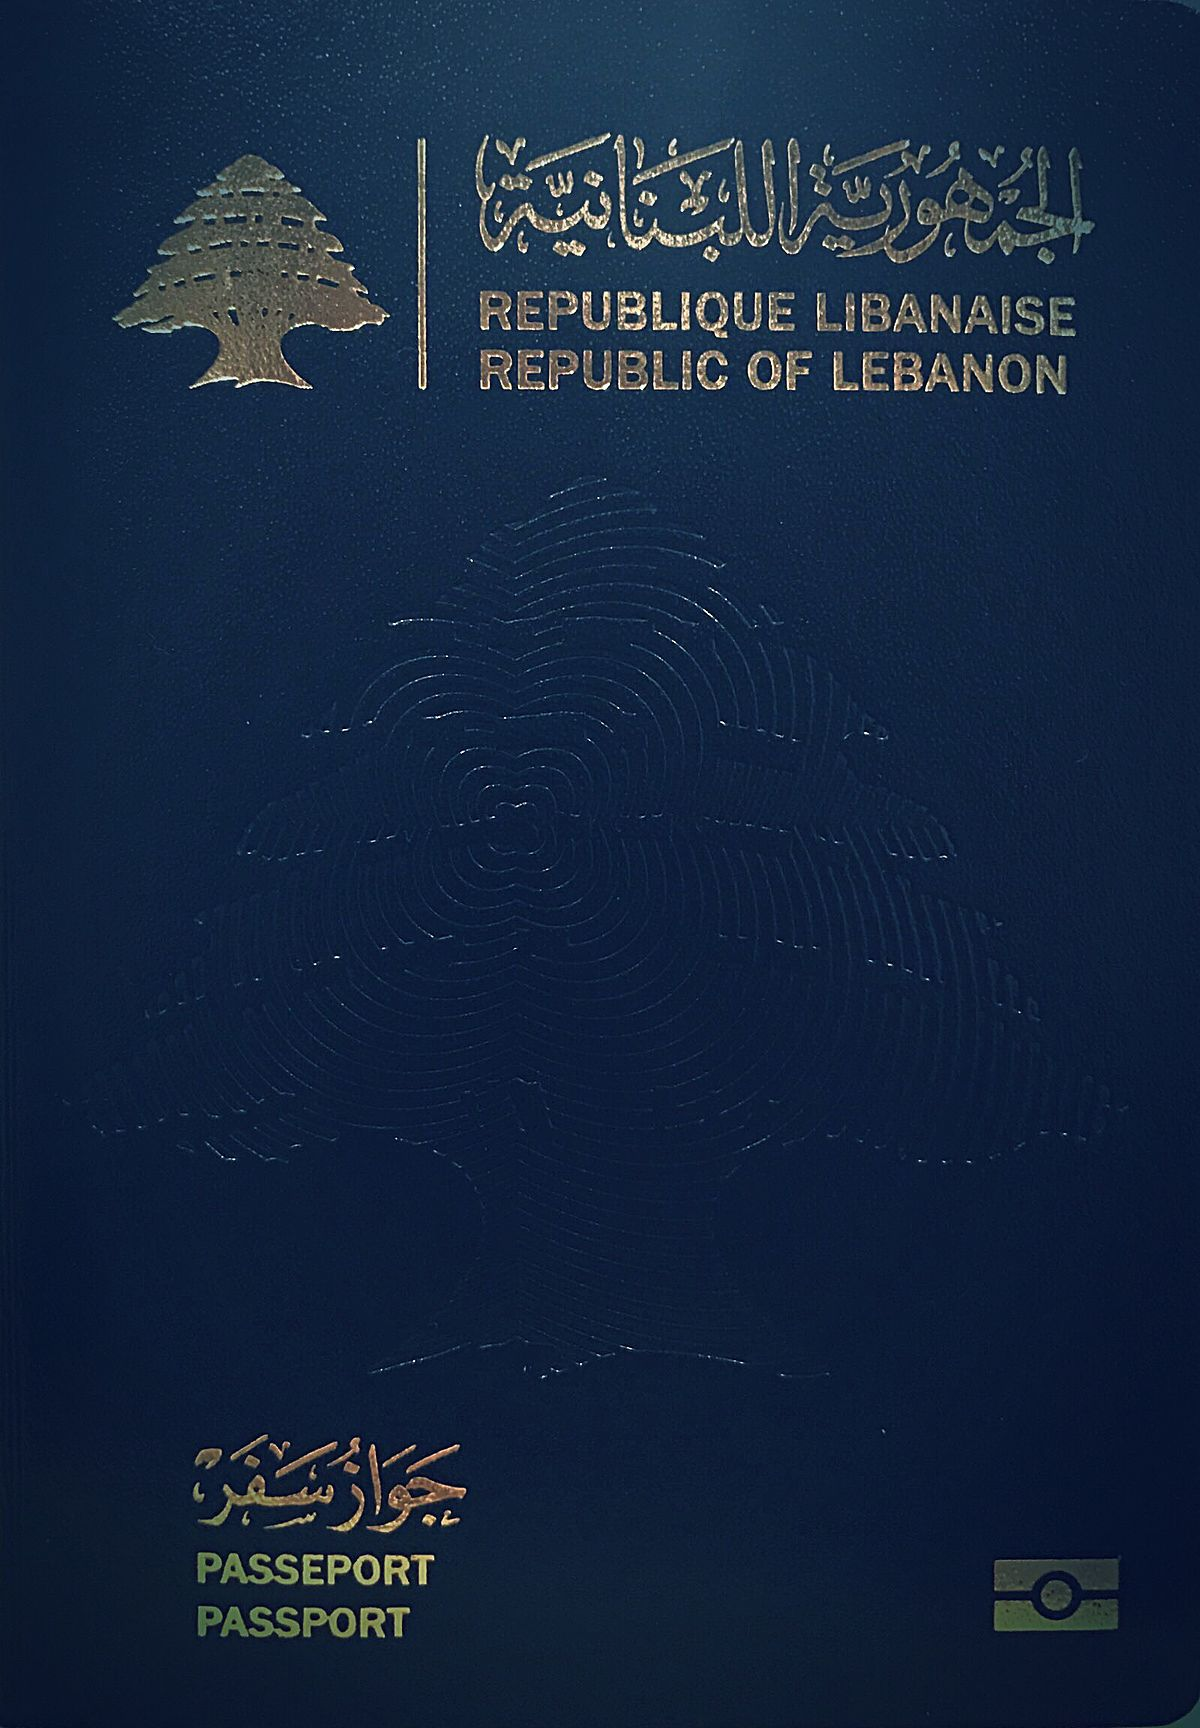 Visa requirements for Lebanese citizens - Wikipedia